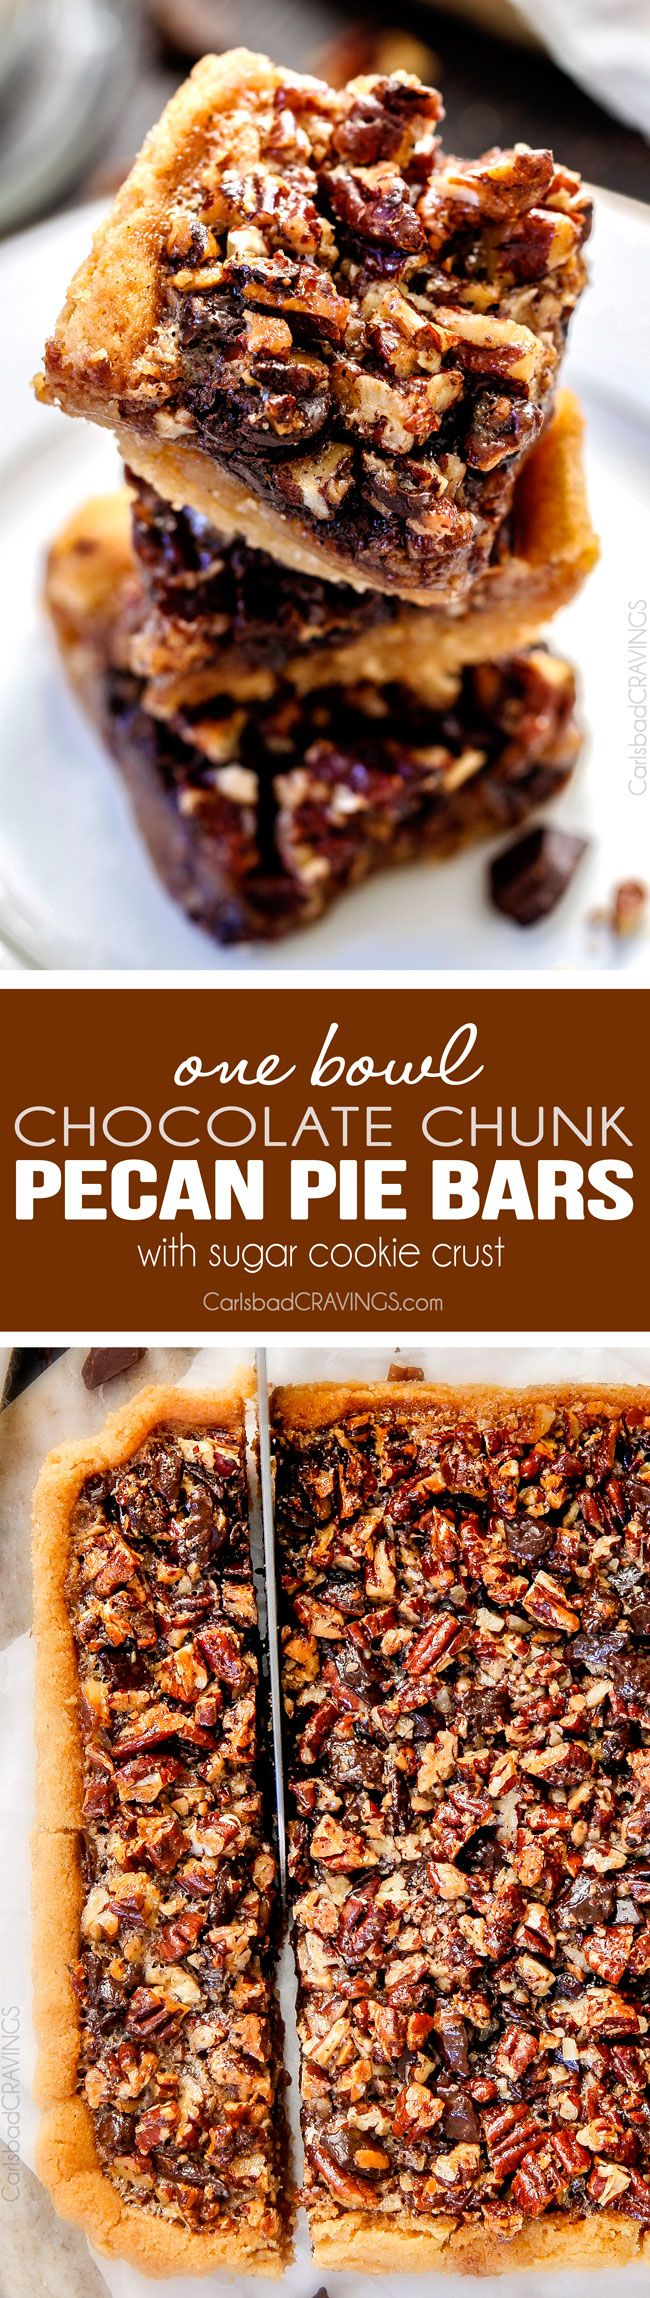 Easy ONE BOWL Chocolate Chunk Pecan Pie Bars with a SUGAR COOKIE CRUST! these bars are AMAZING! Way better with chocolate chunks and the Sugar Cookie Crust is so soft and chewy.  via @carlsbadcraving